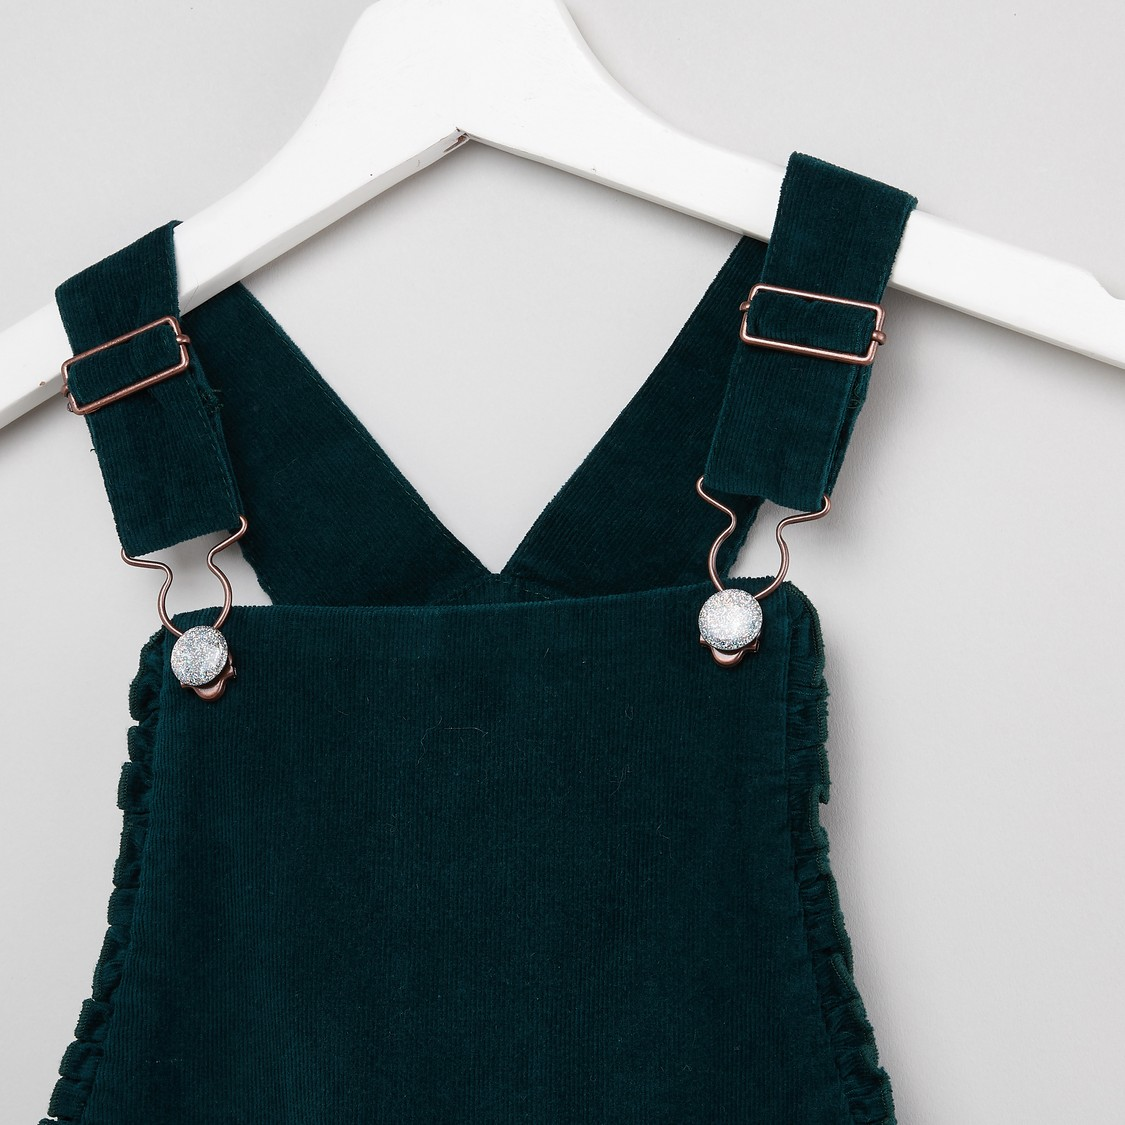 Textured Dungaree with Adjustable Straps and Button Closure